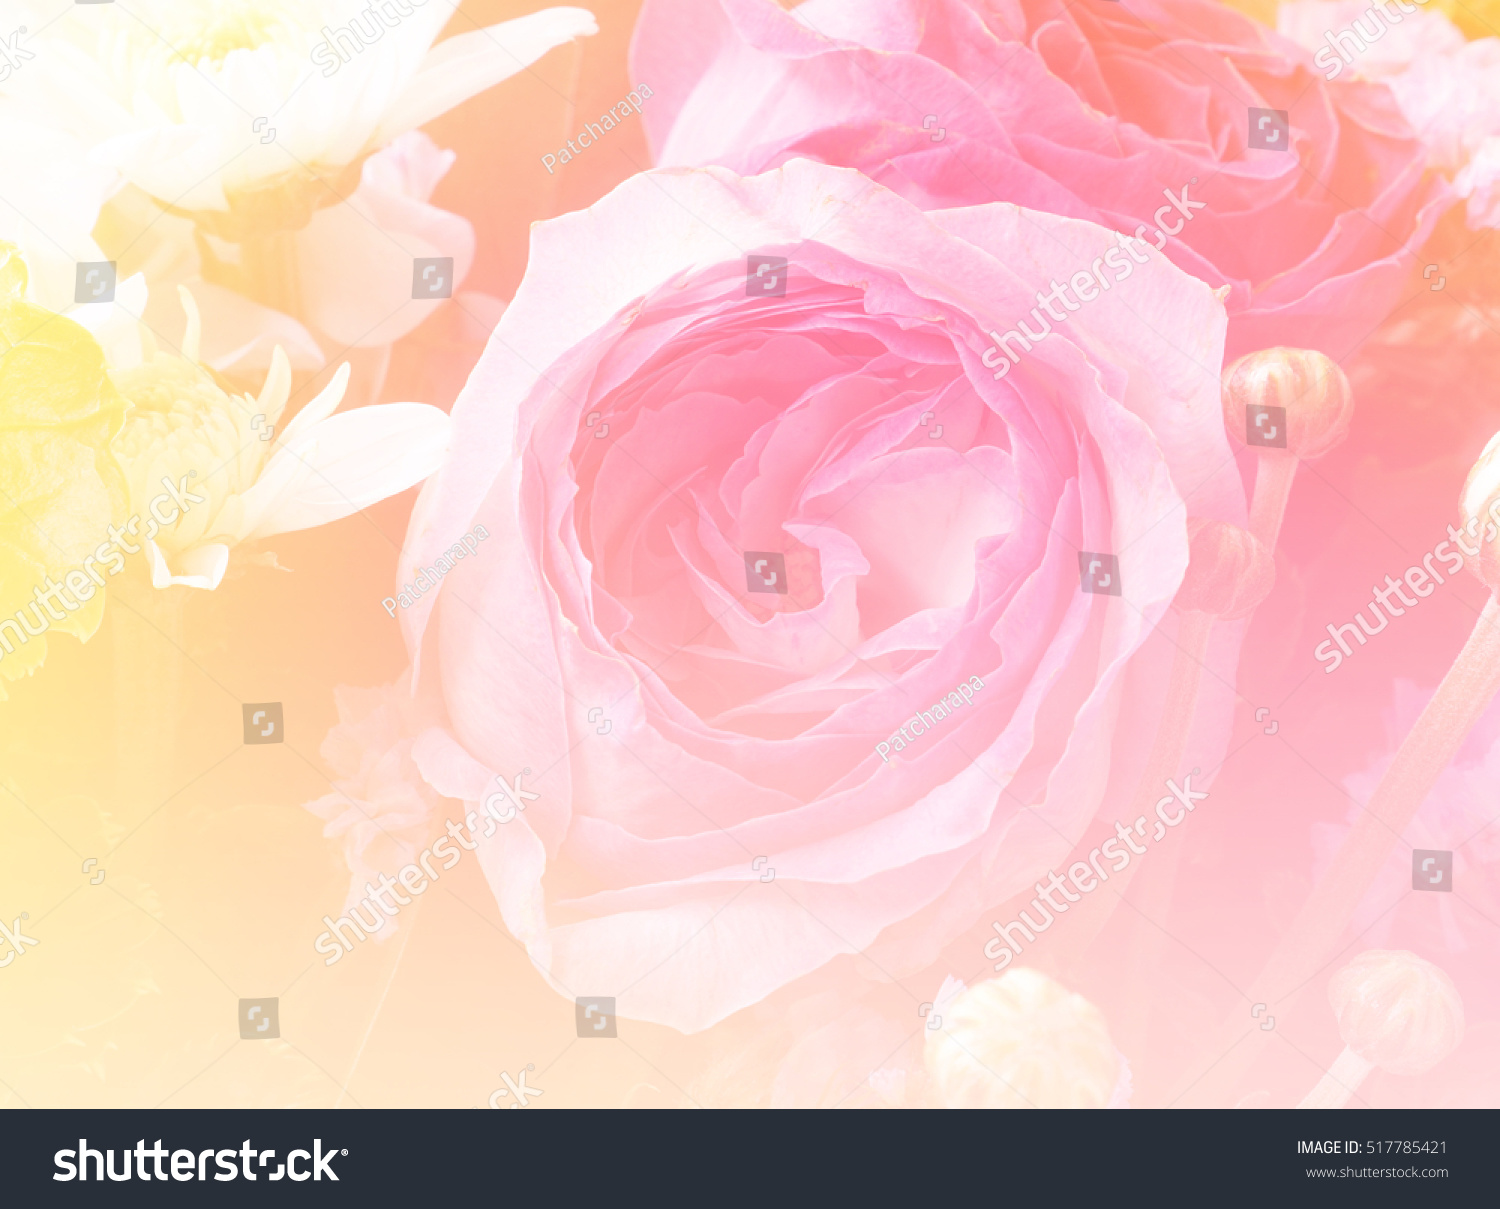 Pink rose flower bouquet background made with color filter effect id 517785421 izmirmasajfo